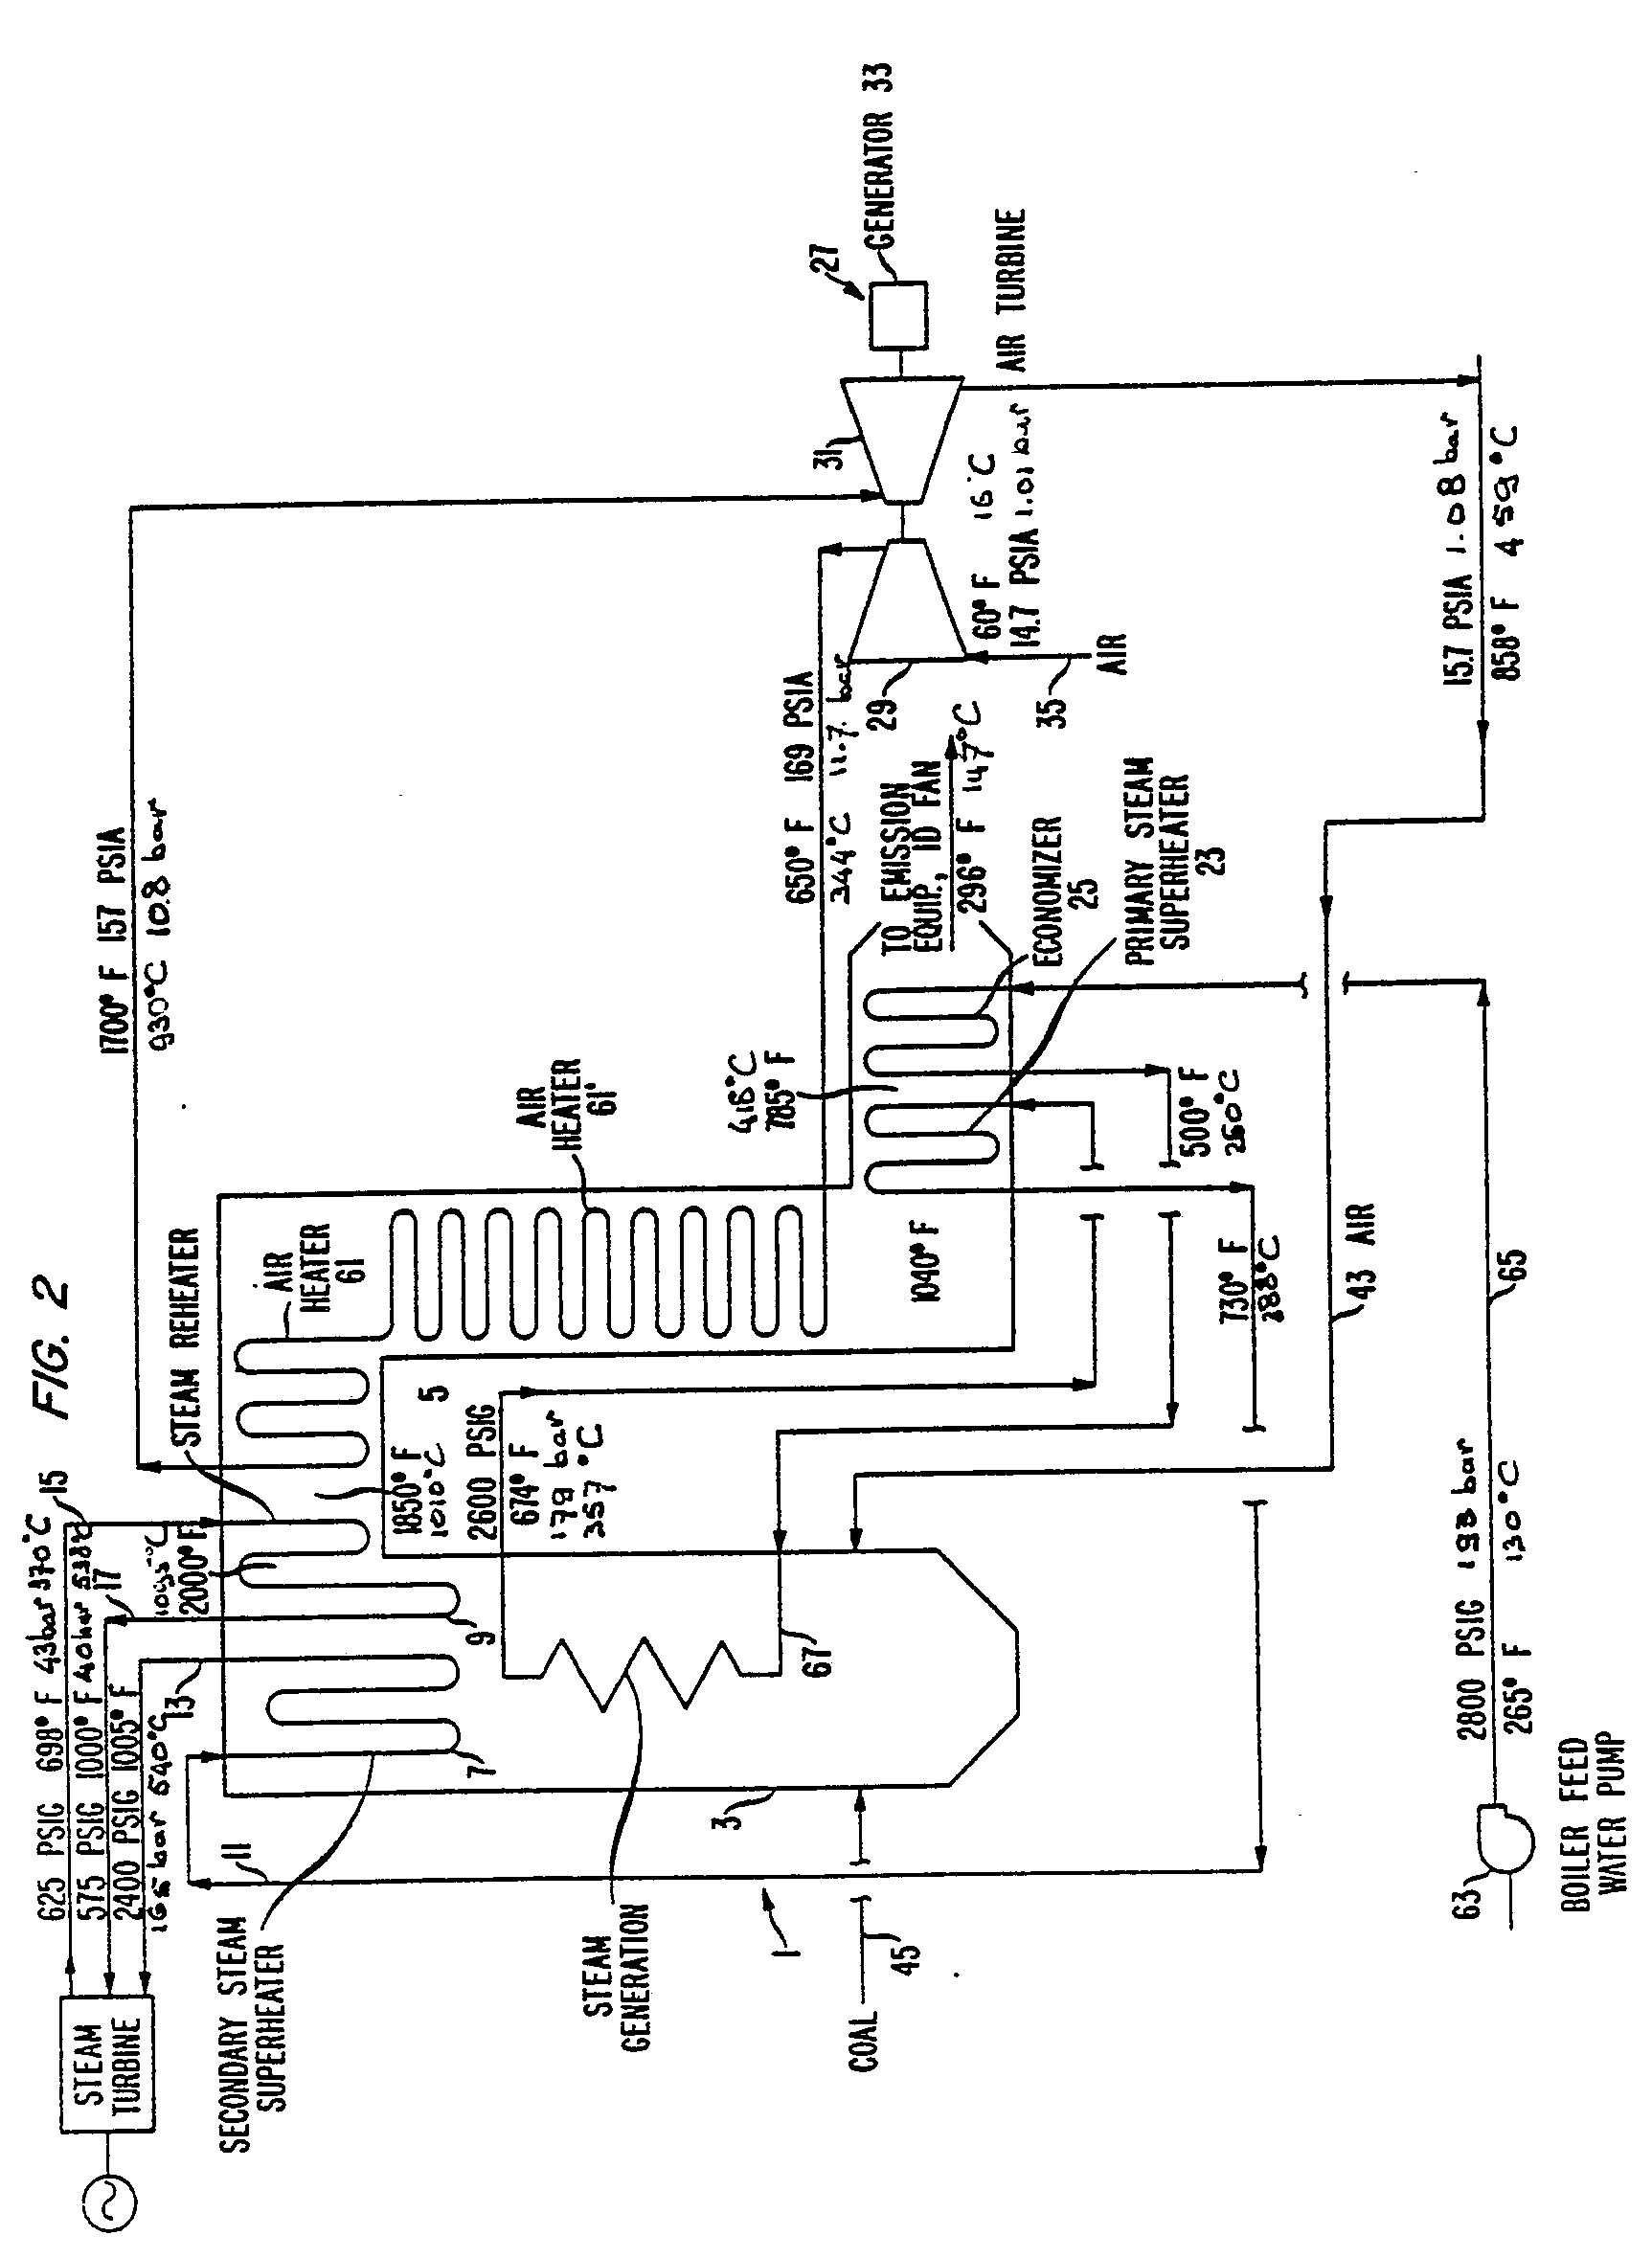 92 oldsmobile silhouette fuse box auto electrical wiring diagram rh psu edu  co fr bitoku me